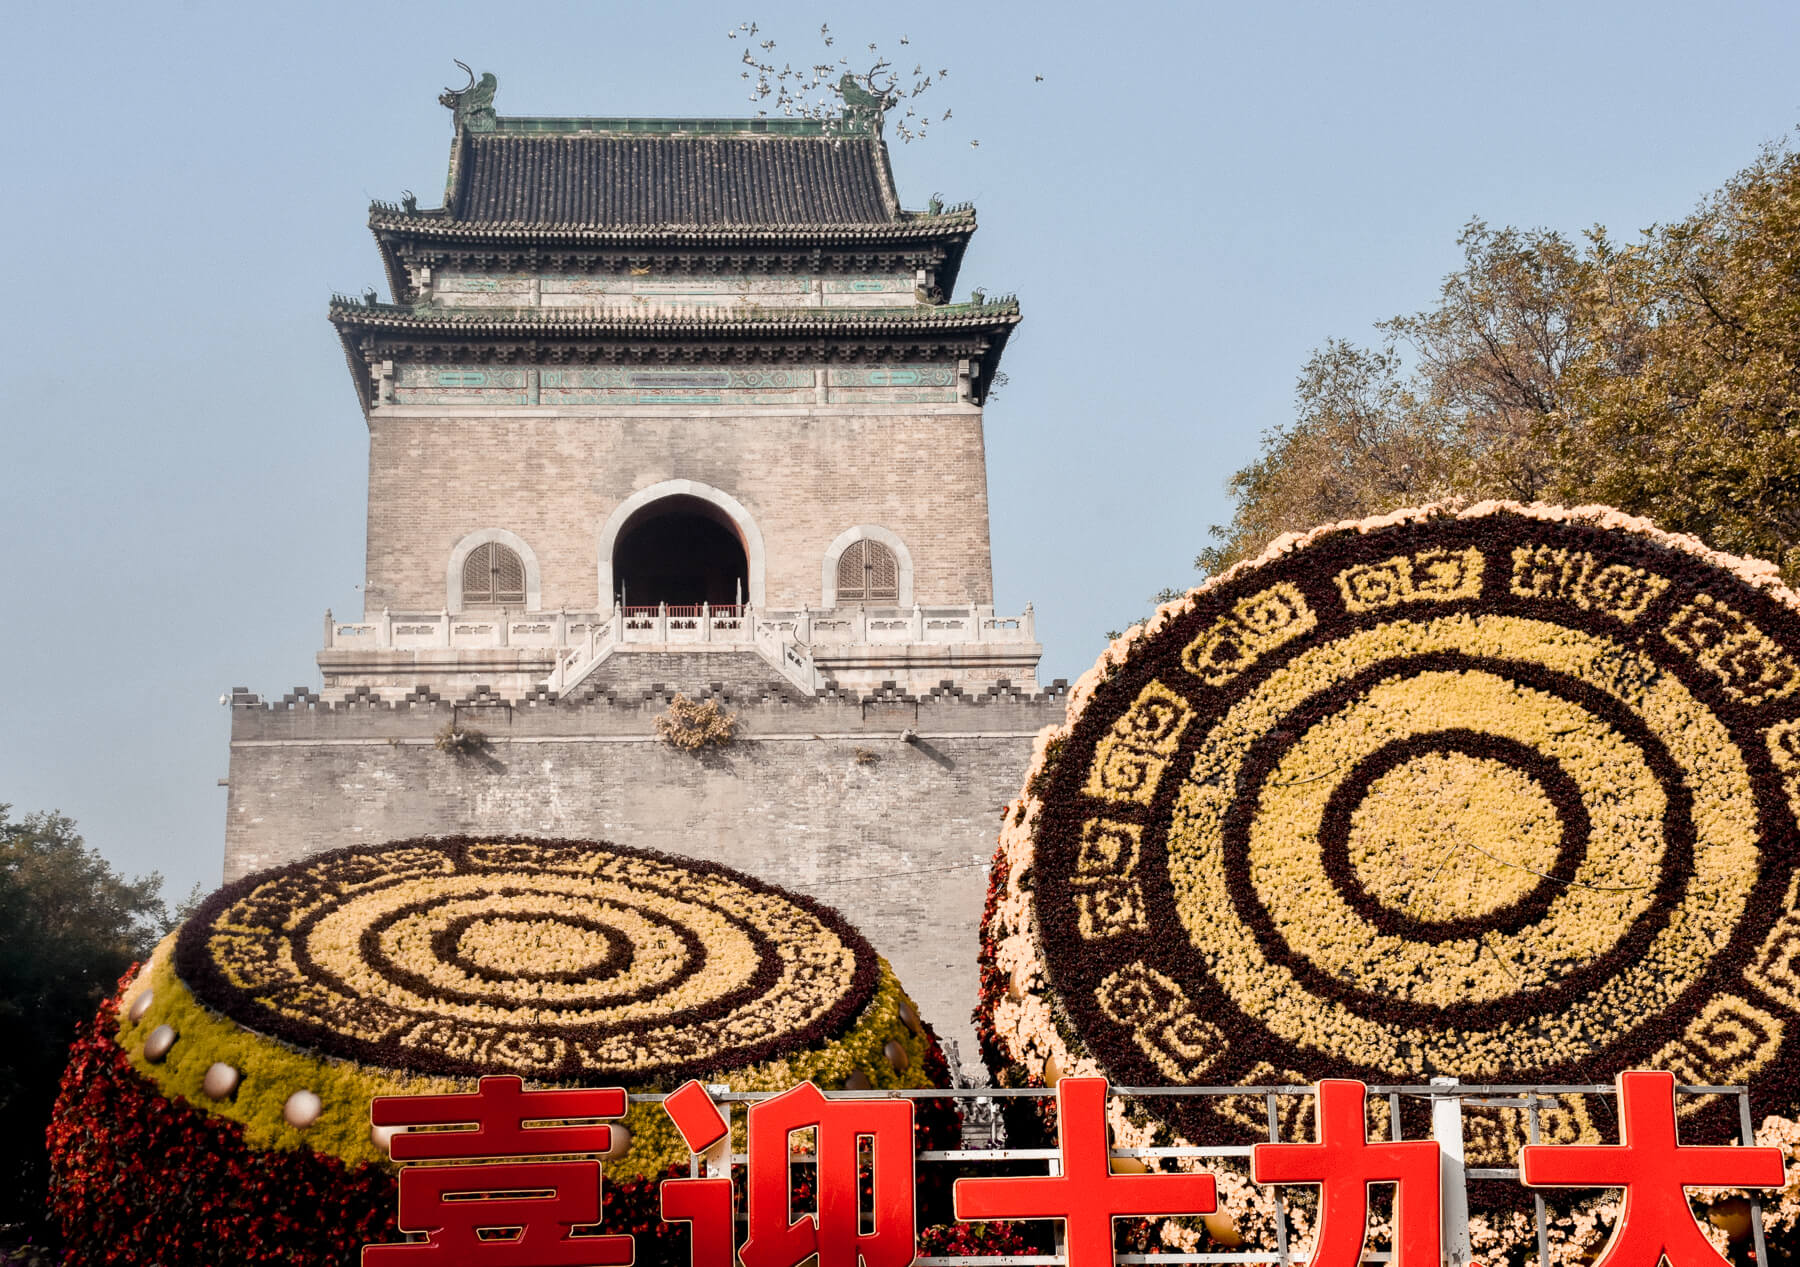 Amazing flower display in front of a bell tower in Hutong, with homing pigeons flying above it